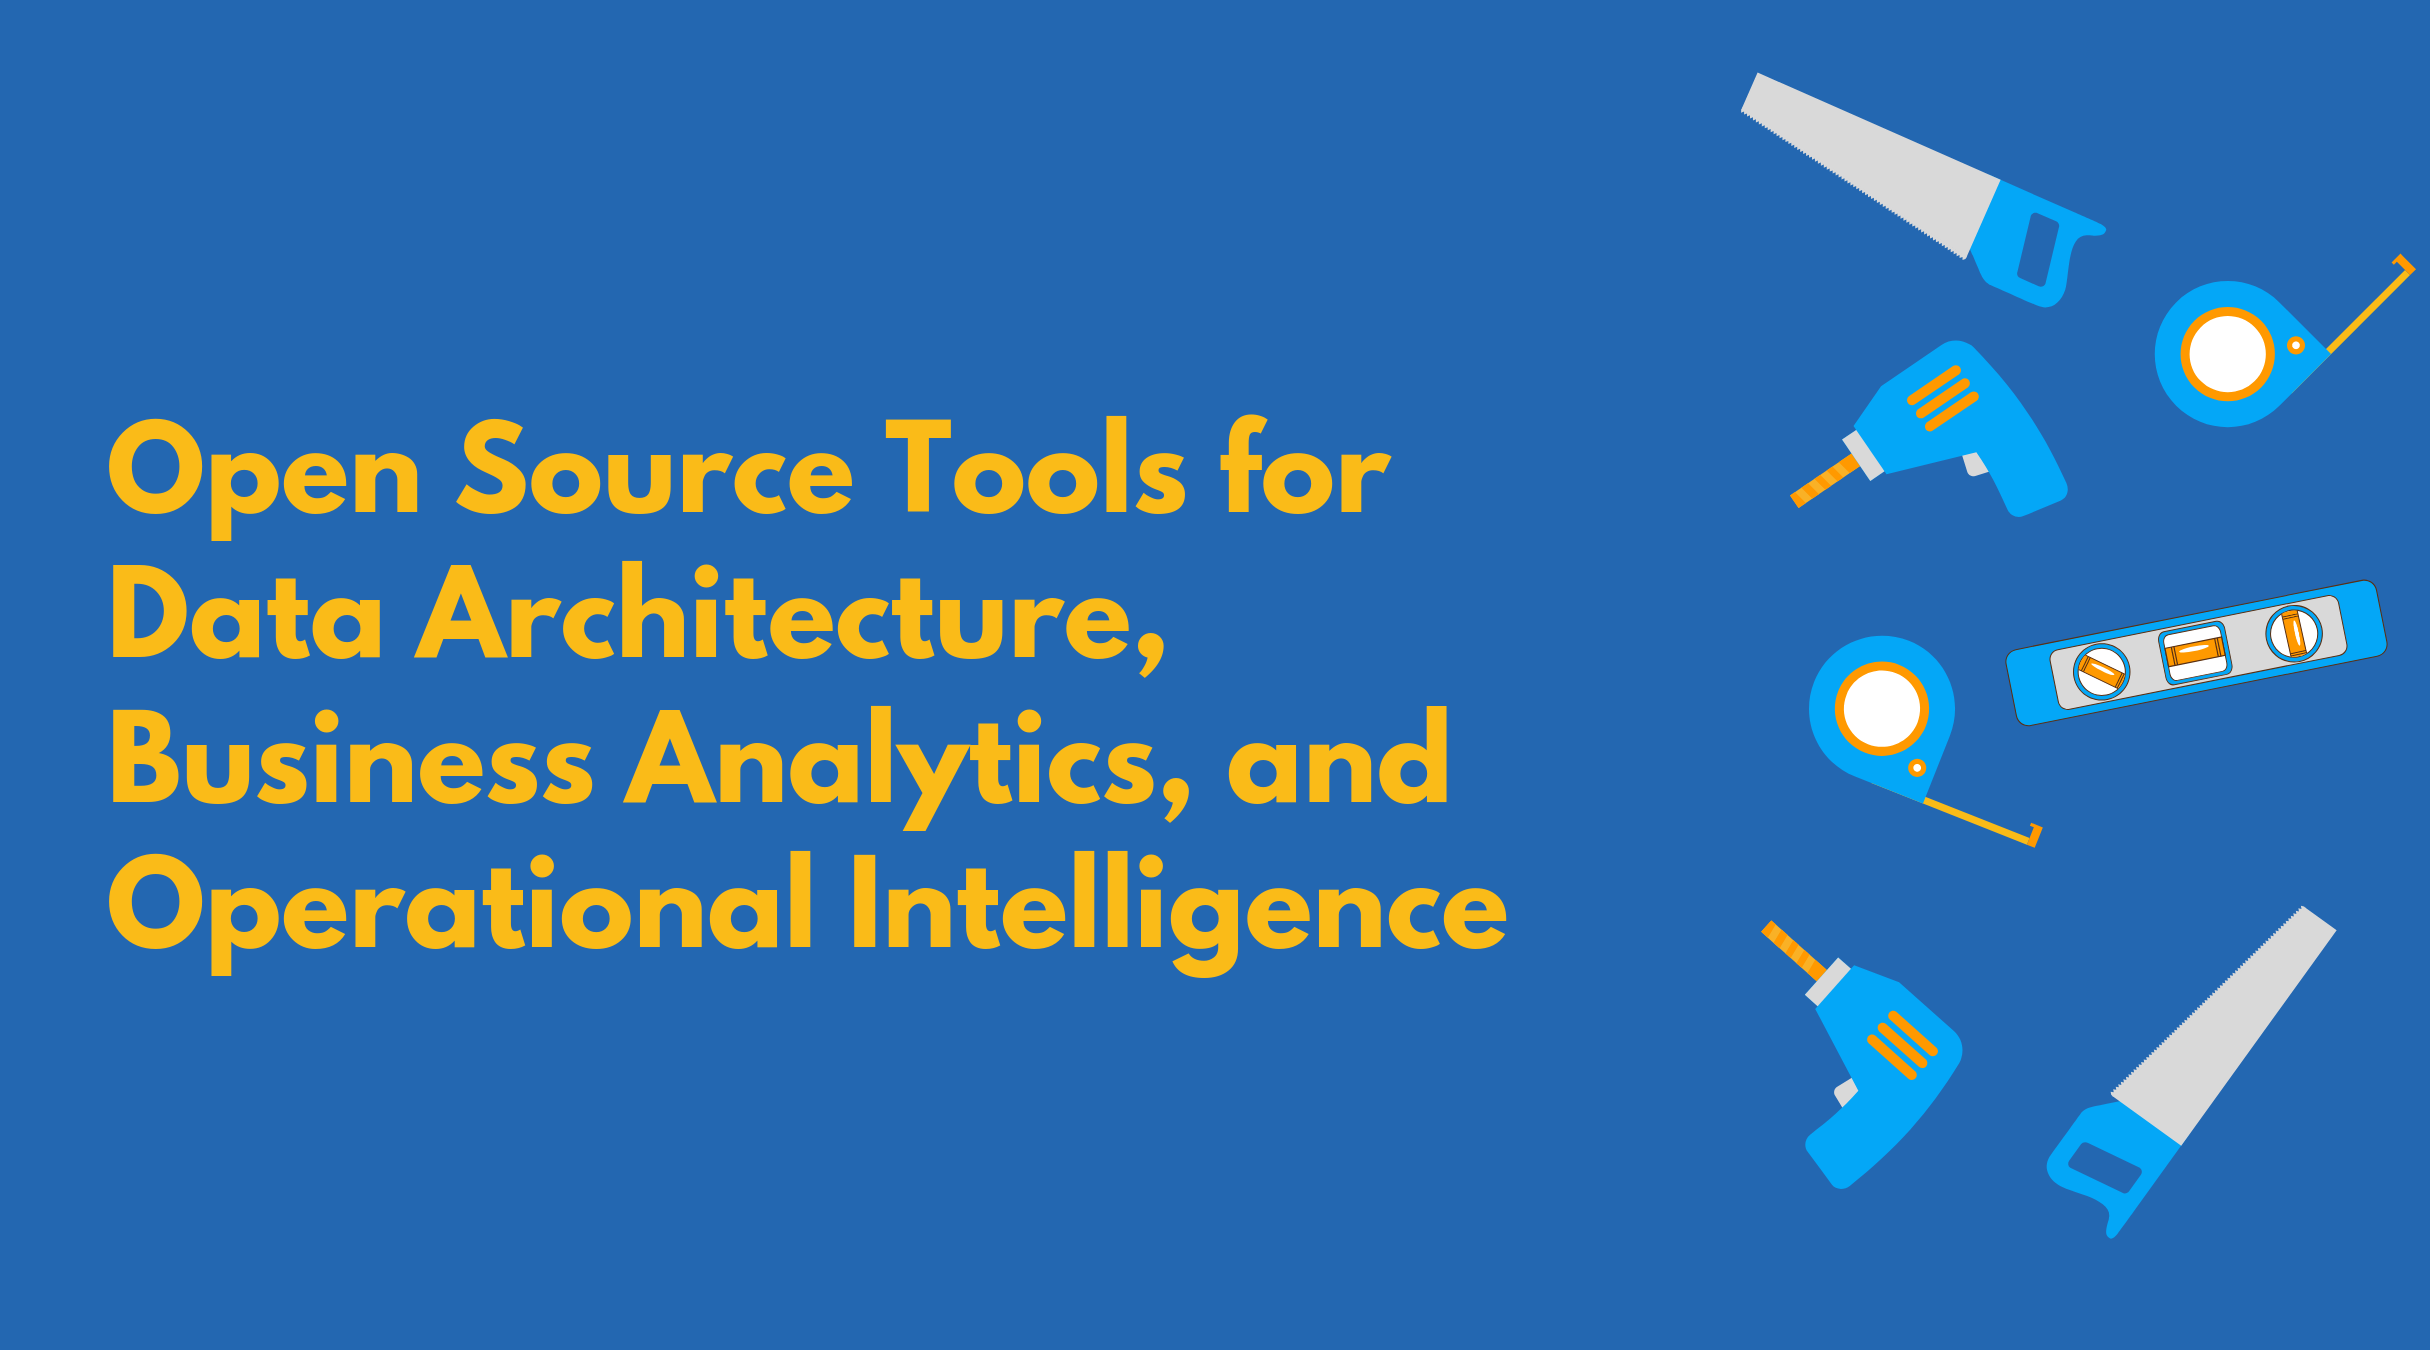 Open Source Tools for Data Architecture, Business Analytics, and Operational Intelligence: Tech's Little Free Library